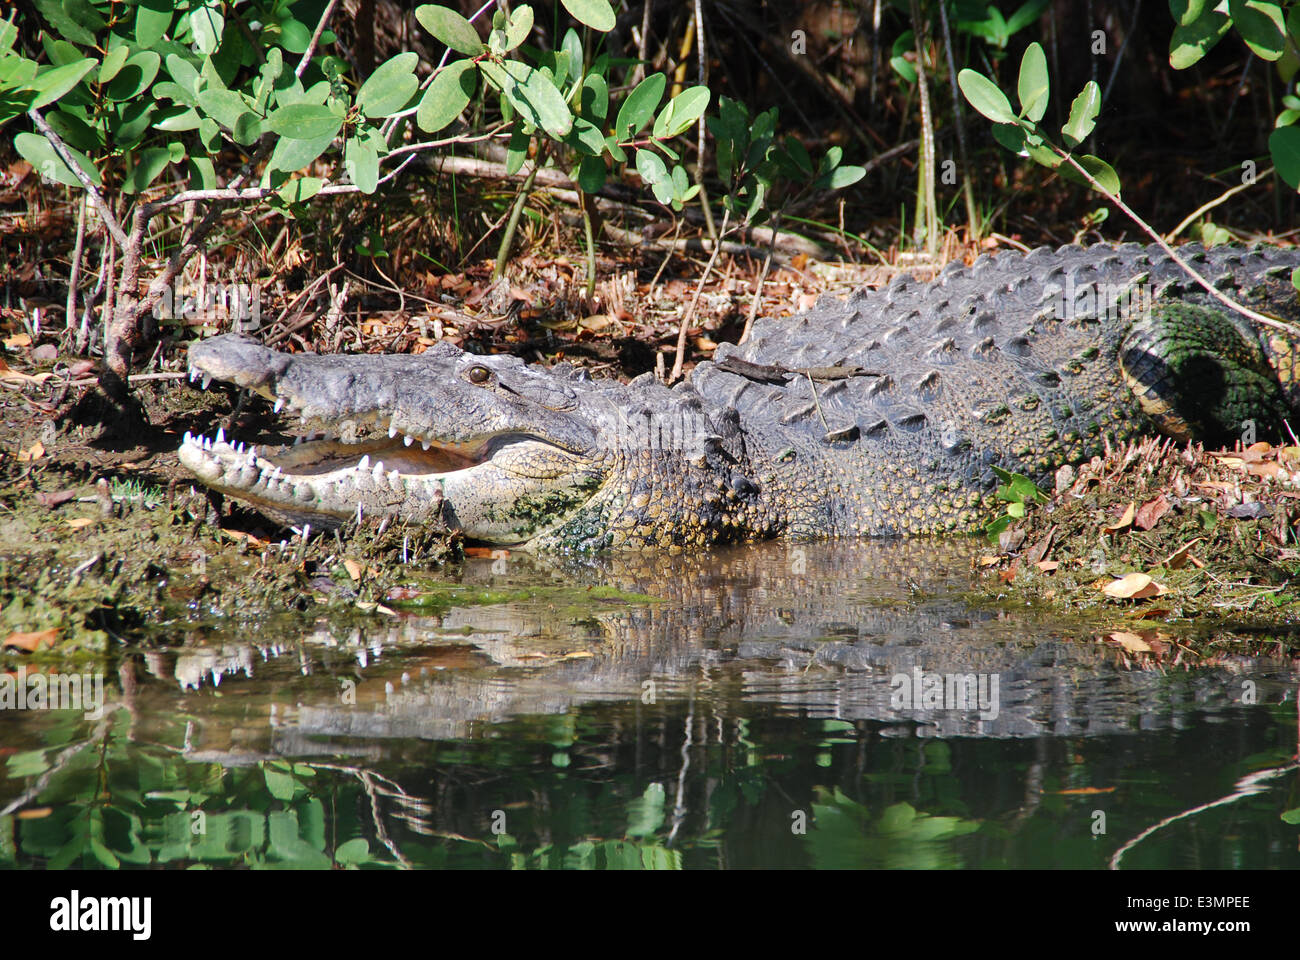 Open-mouthed crocodile in Mexican river. - Stock Image